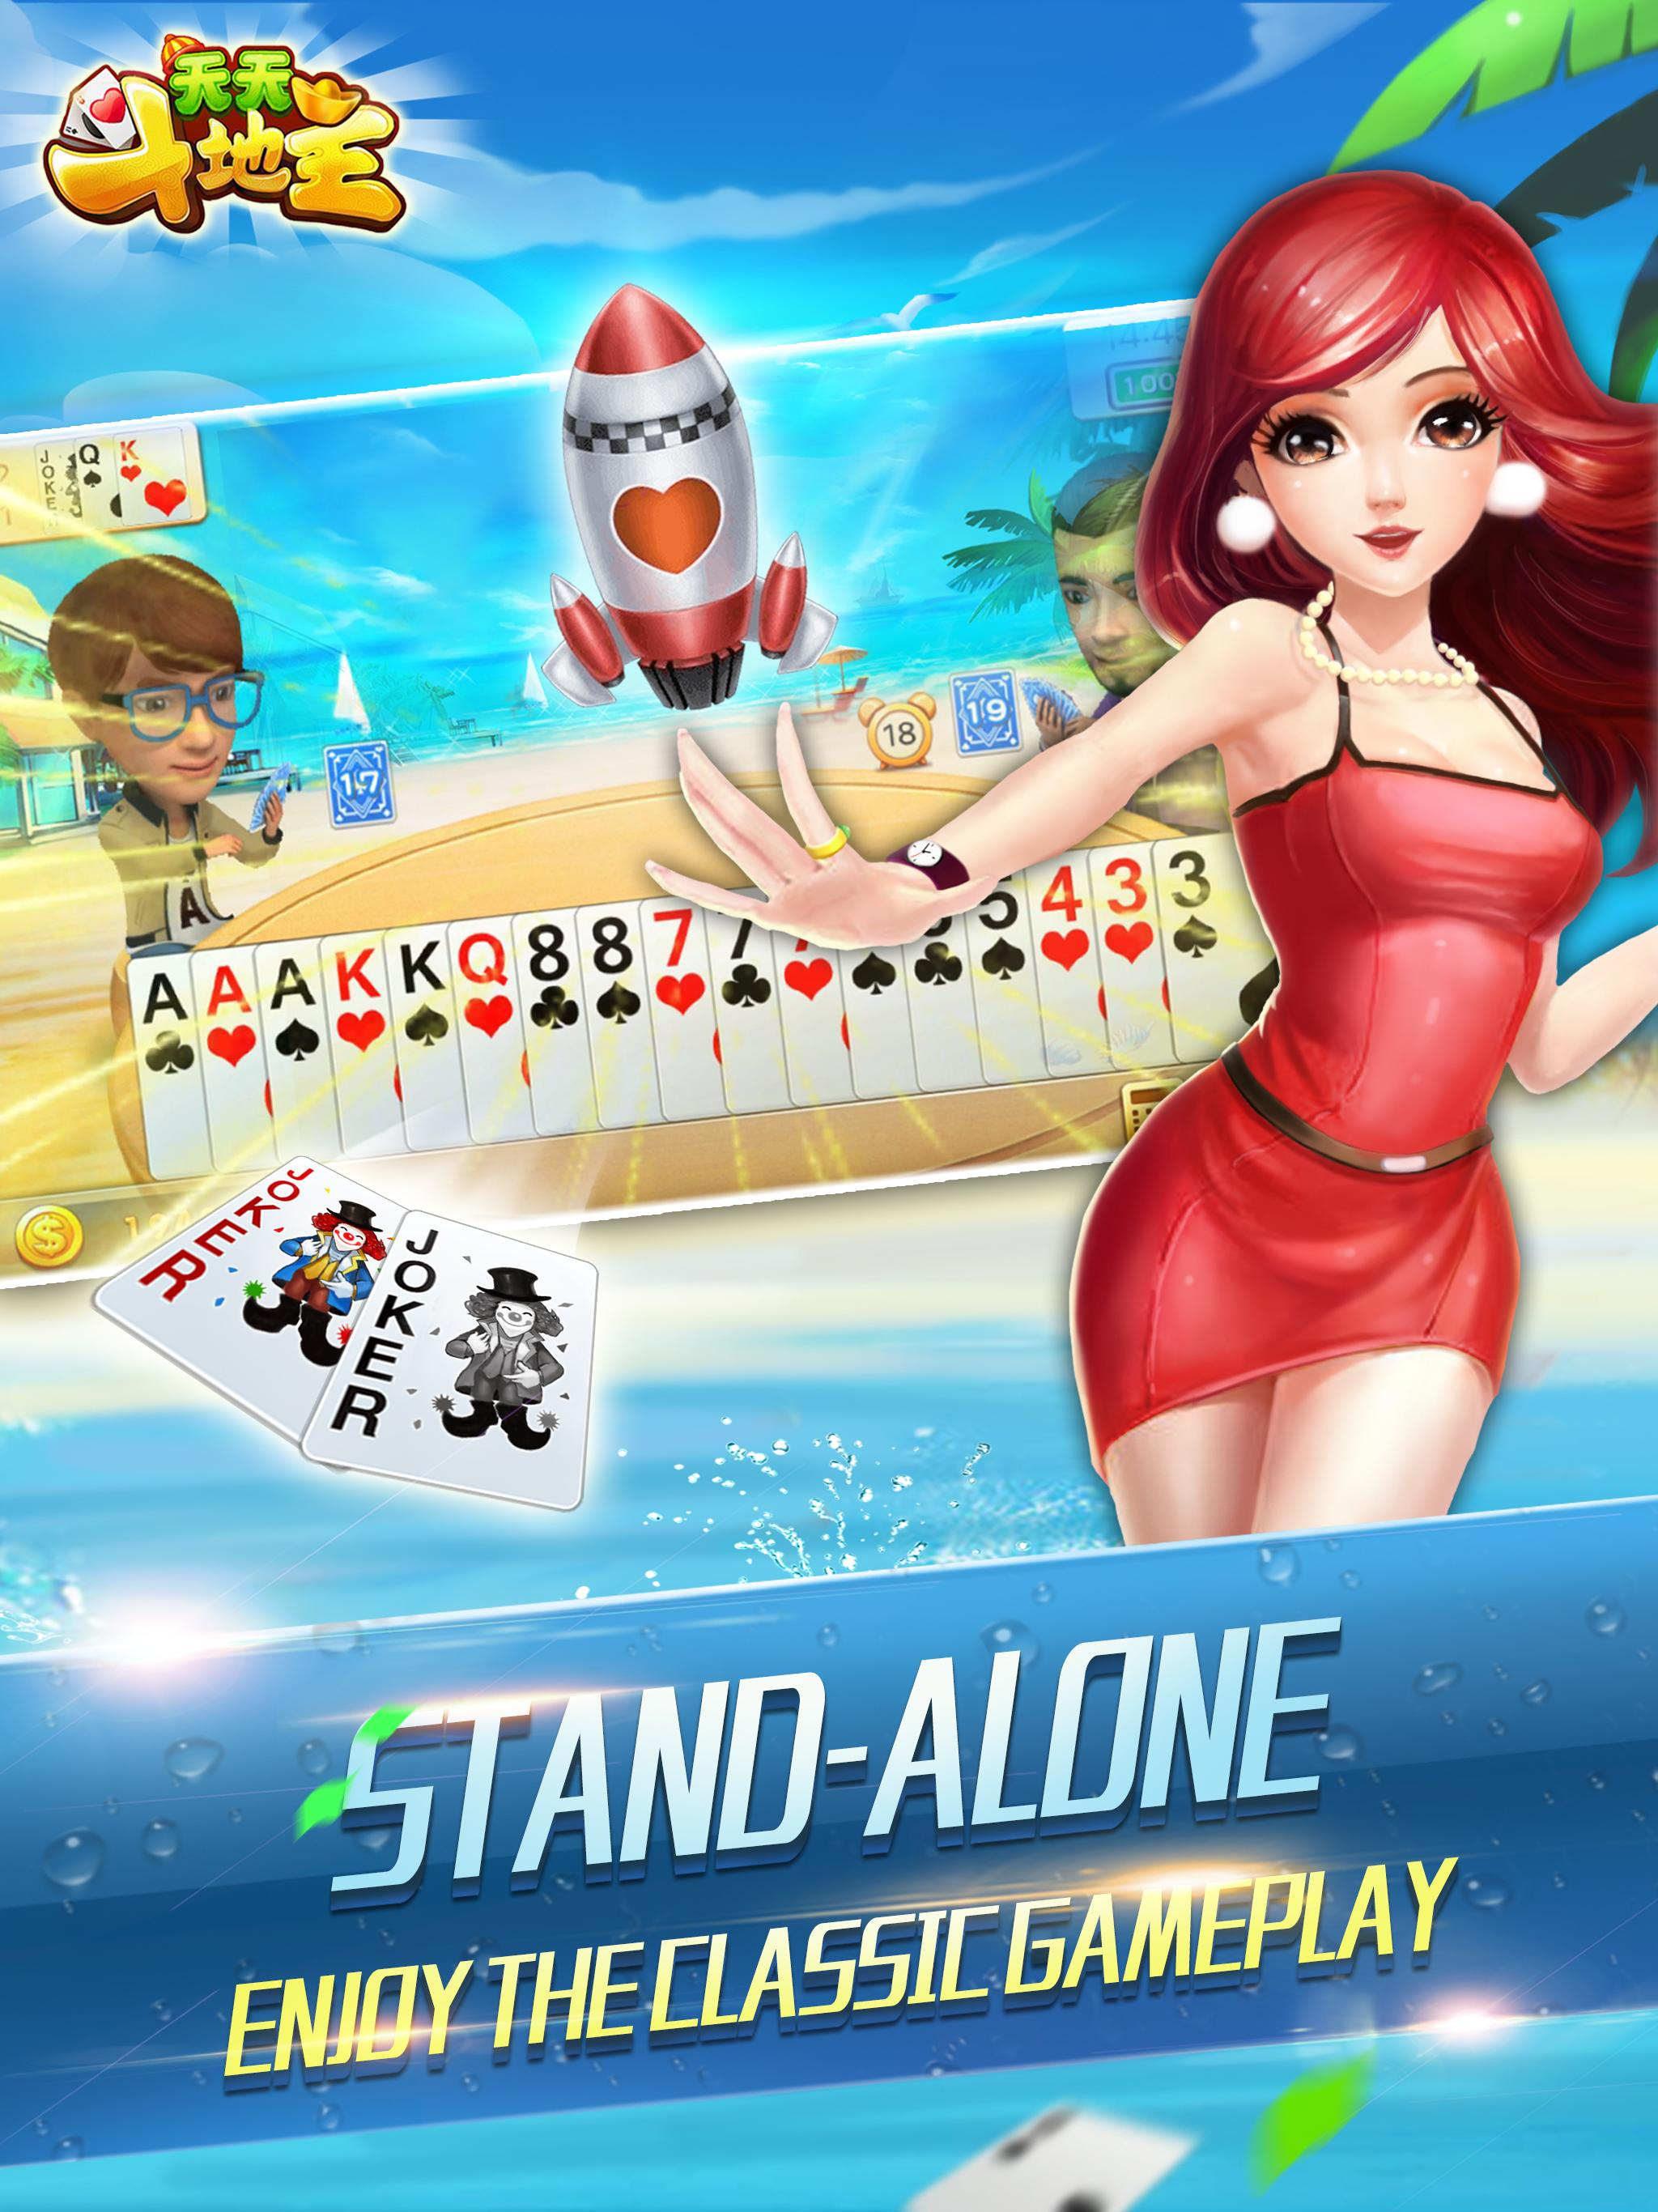 landlords-casino game and card game 1.0 Screenshot 11